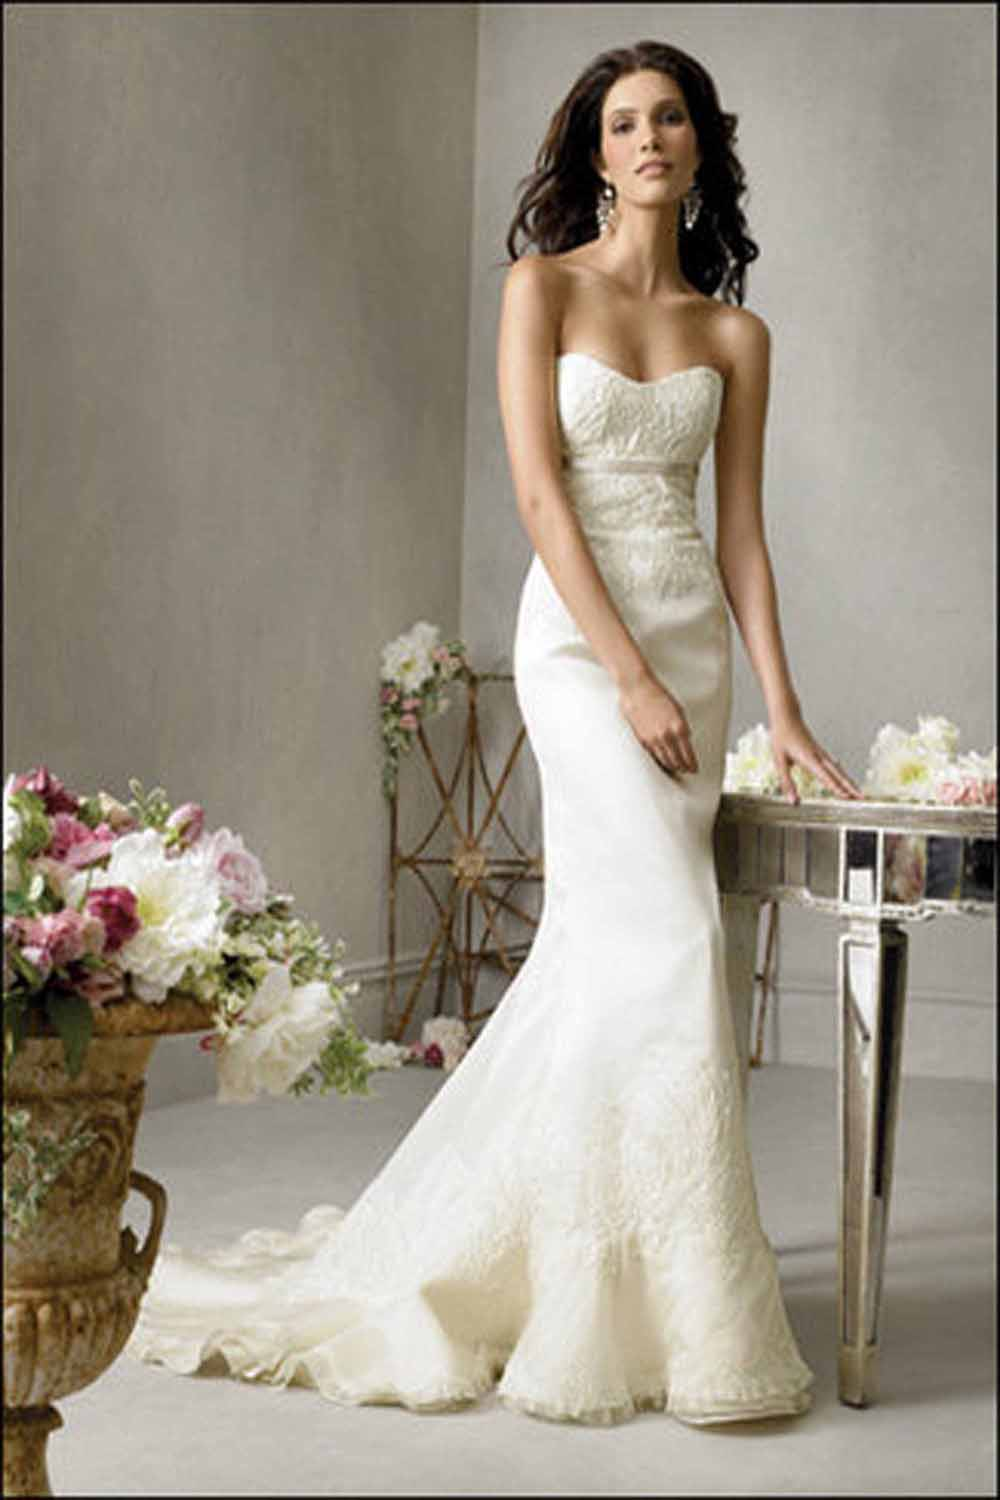 Cheap wedding gowns online blog june 2011 for Wedding dresses discount online